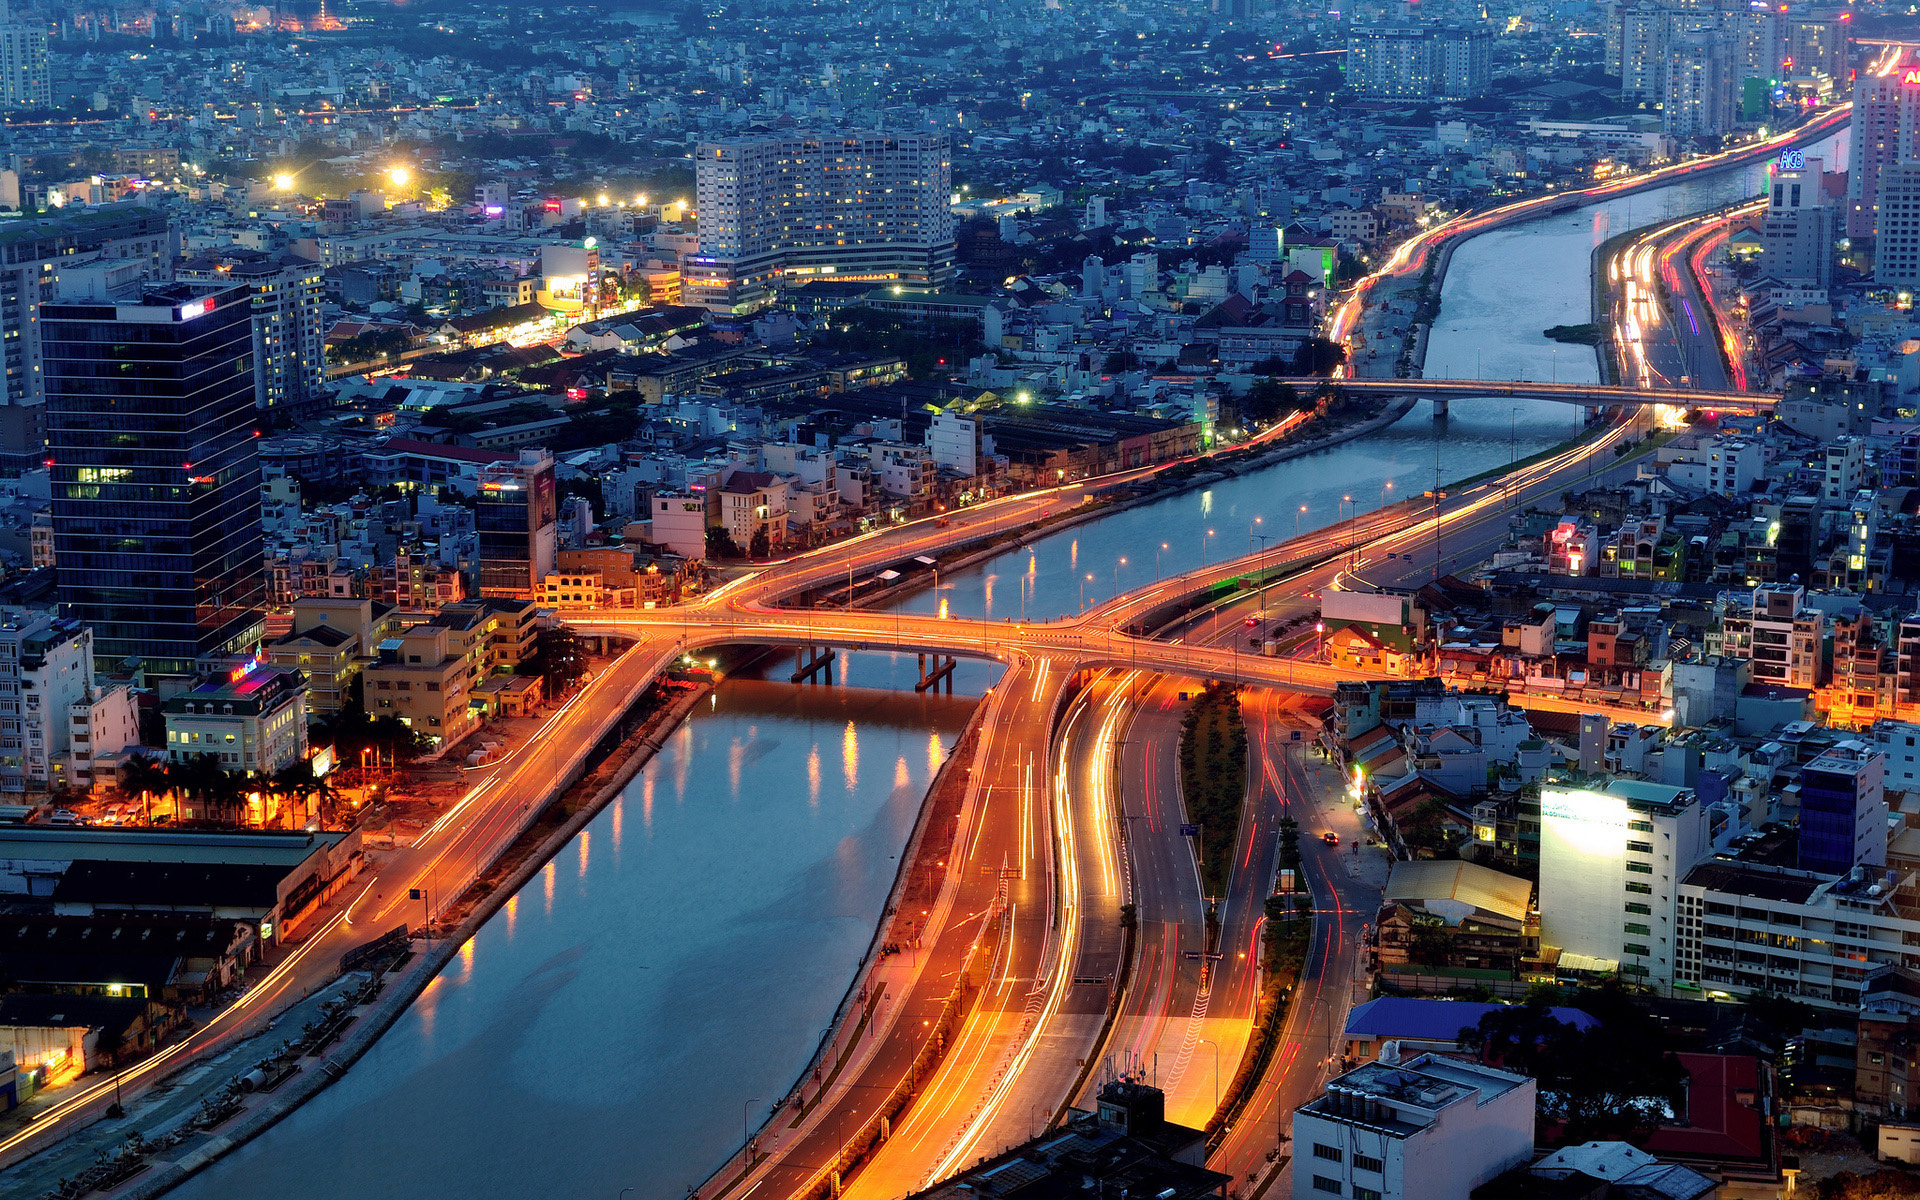 ho-chi-minh-city-in-24-hours-9221